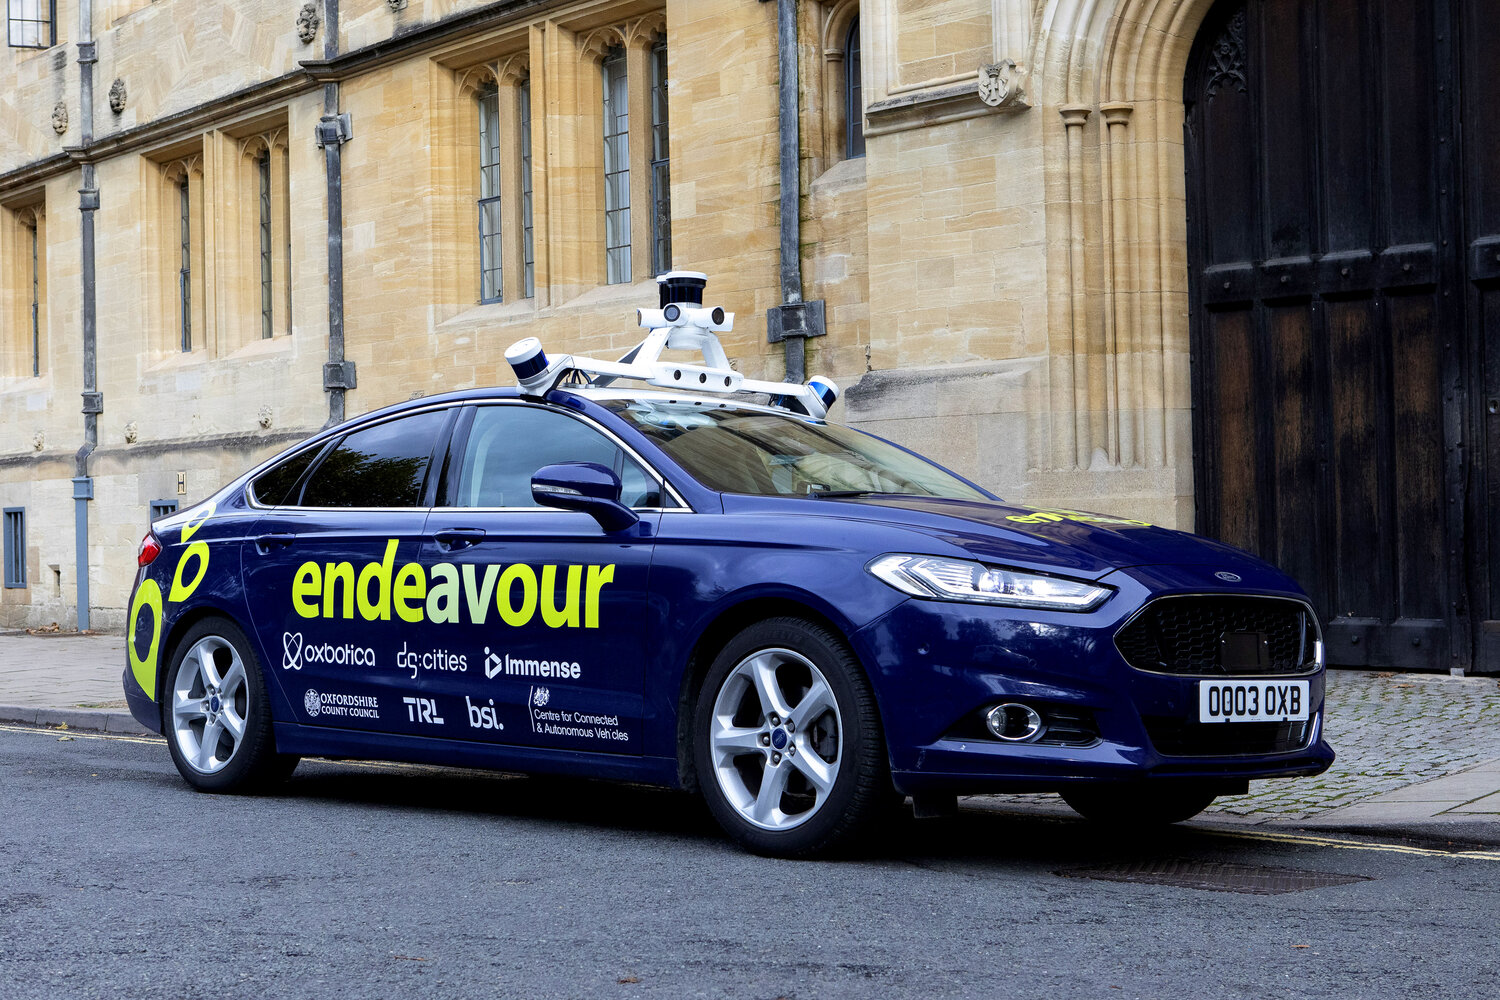 How will citizens make the most of driverless cars   DG Cities